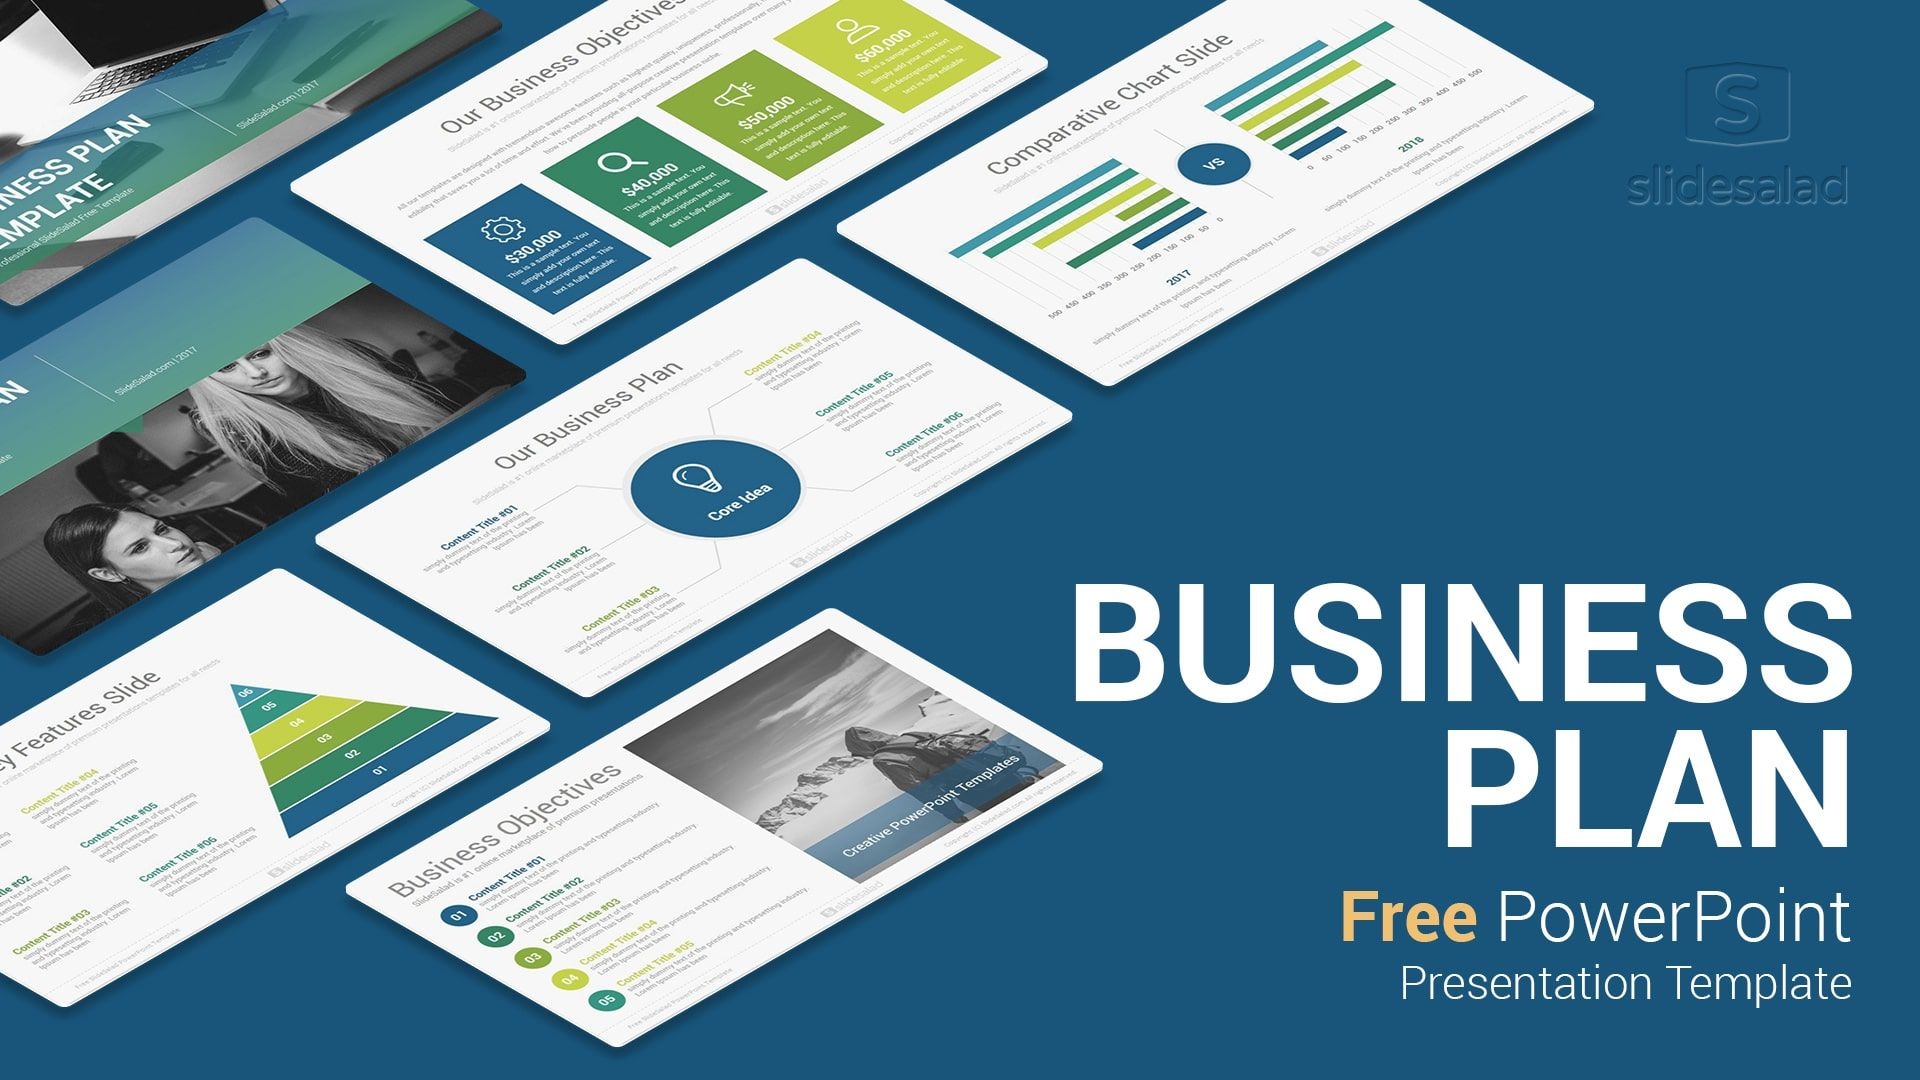 Download Template Ppt Business Plan Free